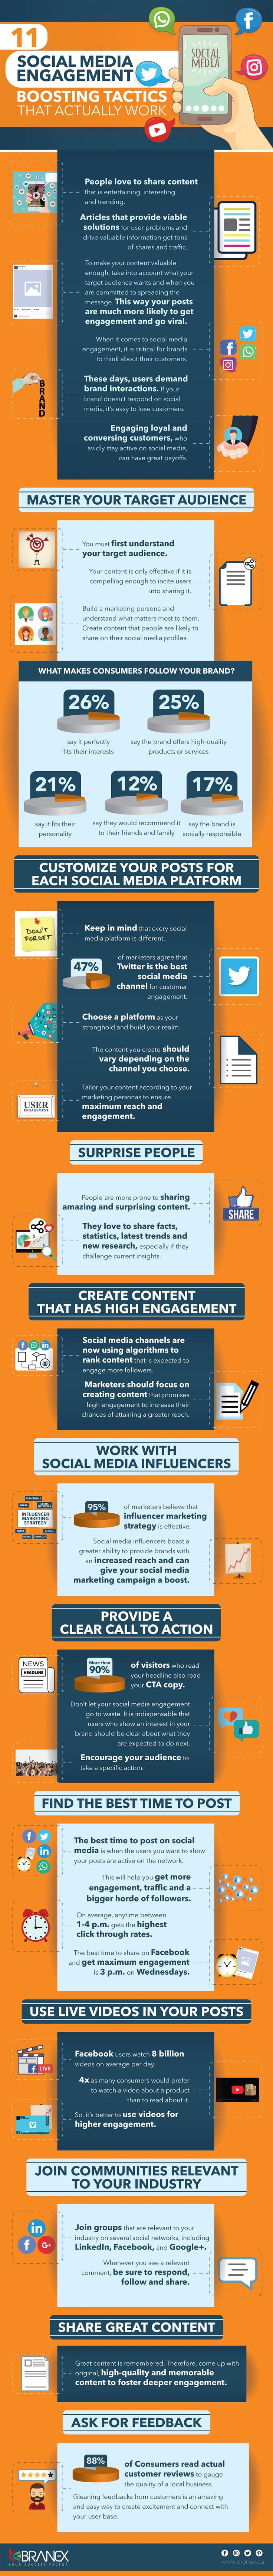 11 Social Media Engagement Boosting Tactics That Actually Work [Infographic